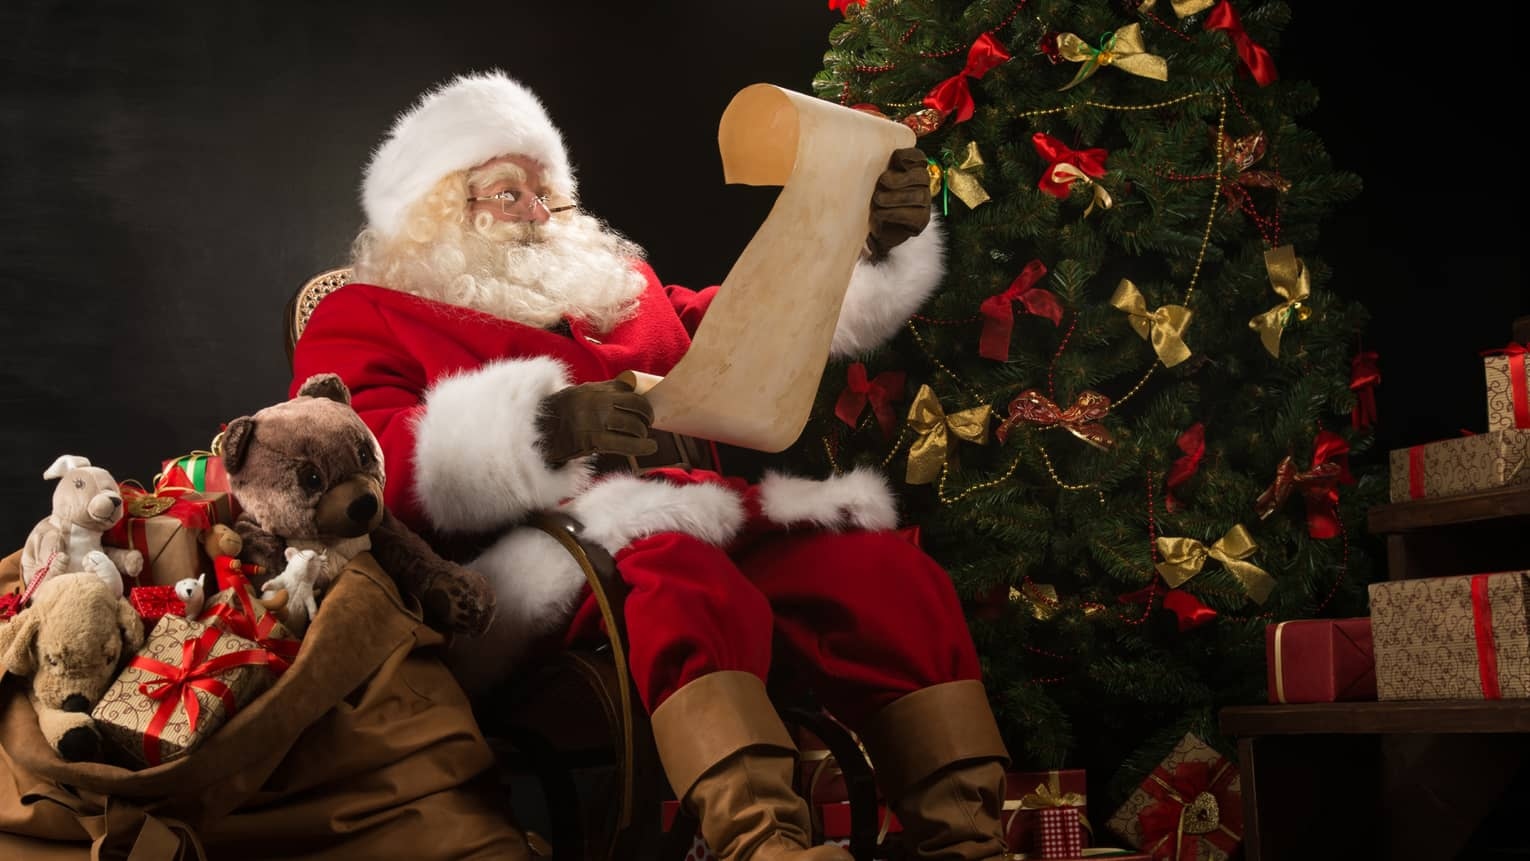 Santa Claus seated in large rocker holding a scroll, flanked by decorated Christmas tree with gifts and overflowing gift bag